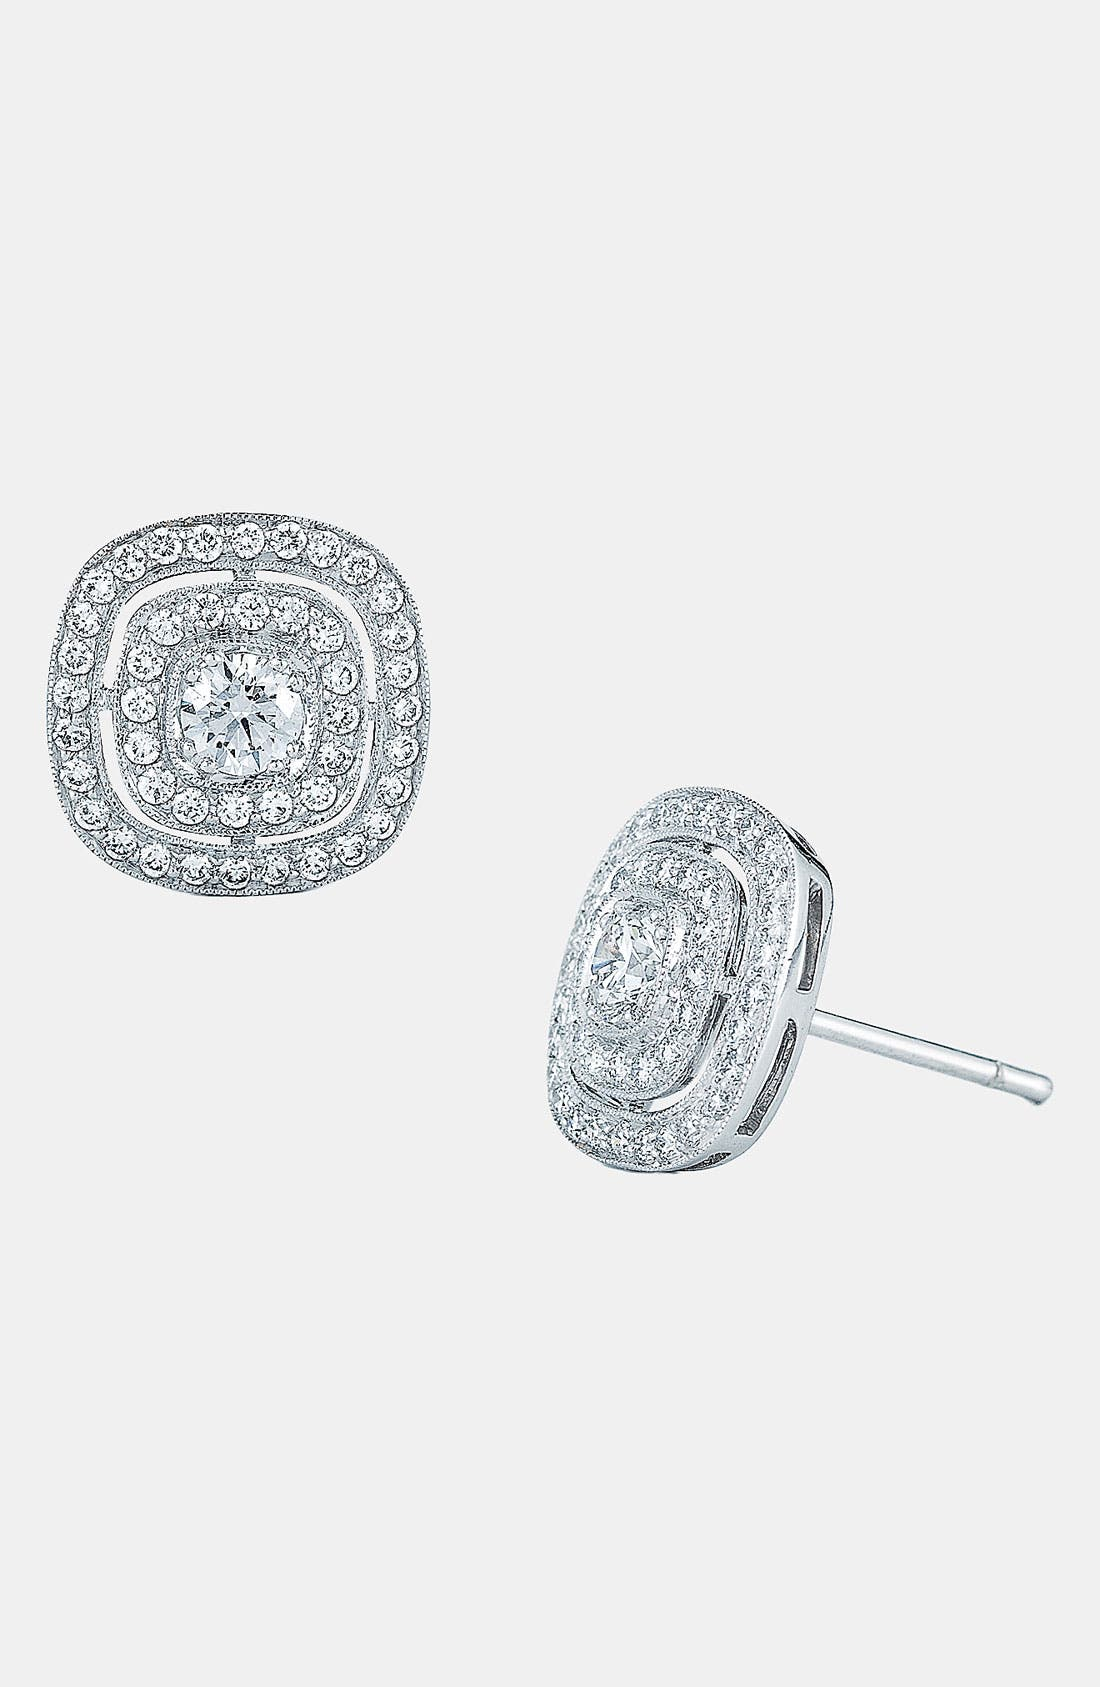 Alternate Image 1 Selected - Kwiat 'Silhouette' Diamond Stud Earrings